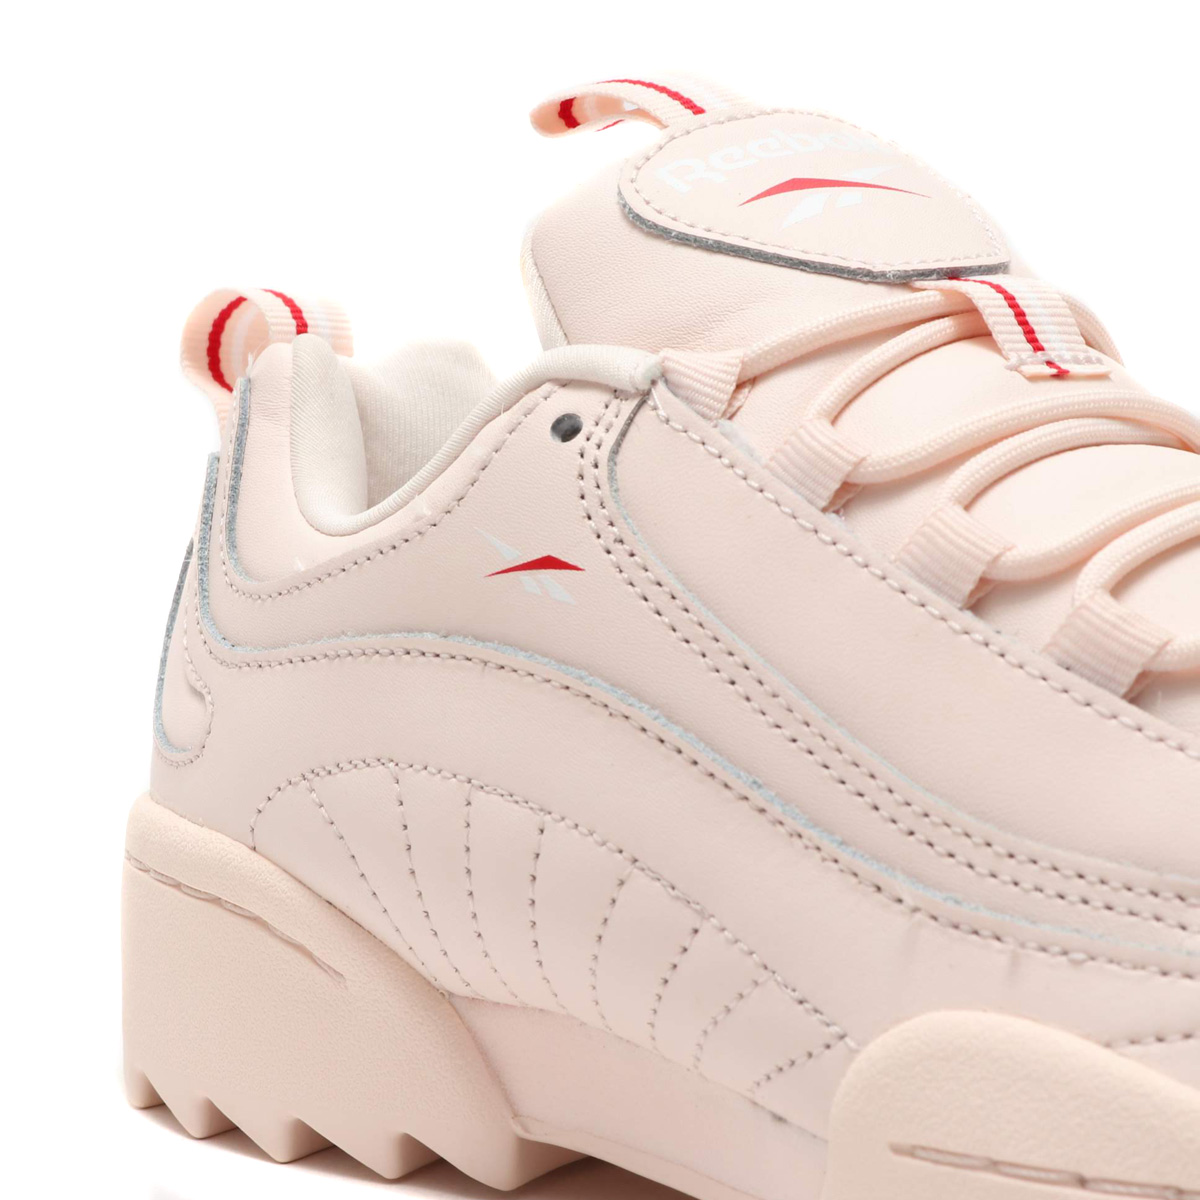 963da3f51be ... Reebok RIVYX RIPPLE (リーボックリヴィクスリップル) PALE PINK/WHITE/EXCELLENT RED ...